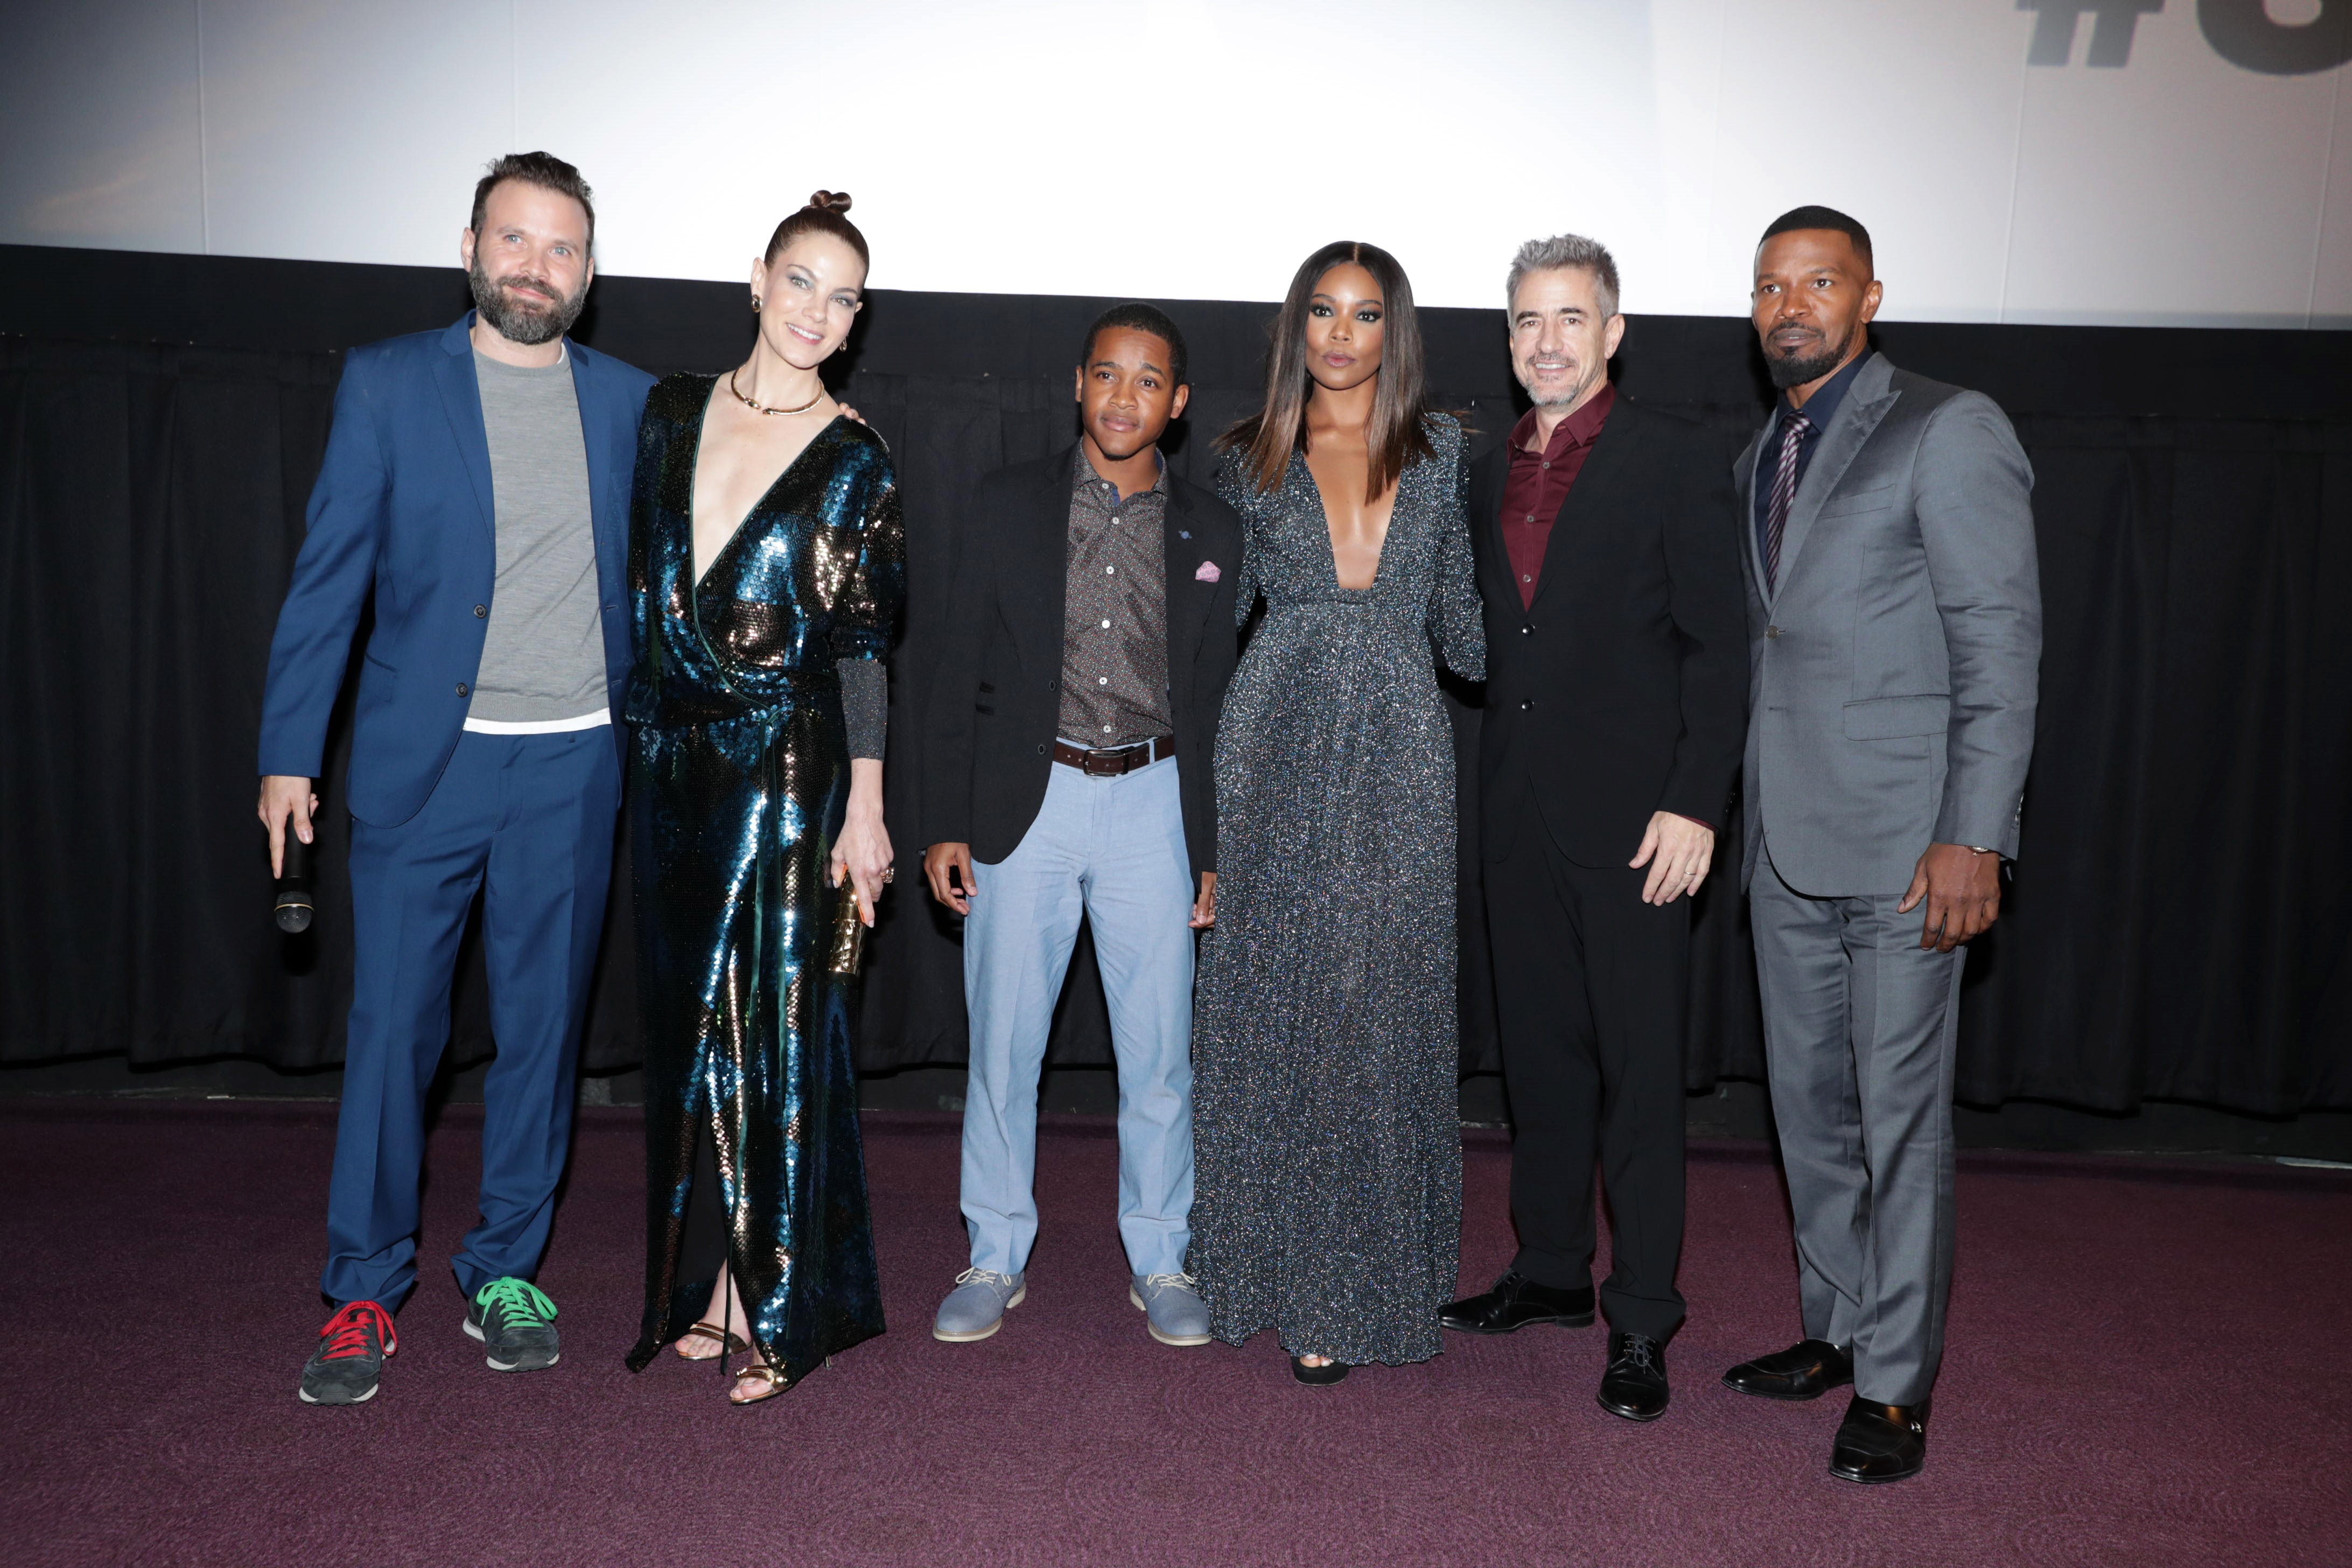 Cast of 'Sleepless' at Los Angeles premiere. Baran bo Odar (director), Michelle Monaghan, Octavius J. Johnson, Gabrielle Union, Dermot Mulroney and Jamie Foxx. (Photo by Eric Charbonneau/Invision for Open Road Films/AP Images)